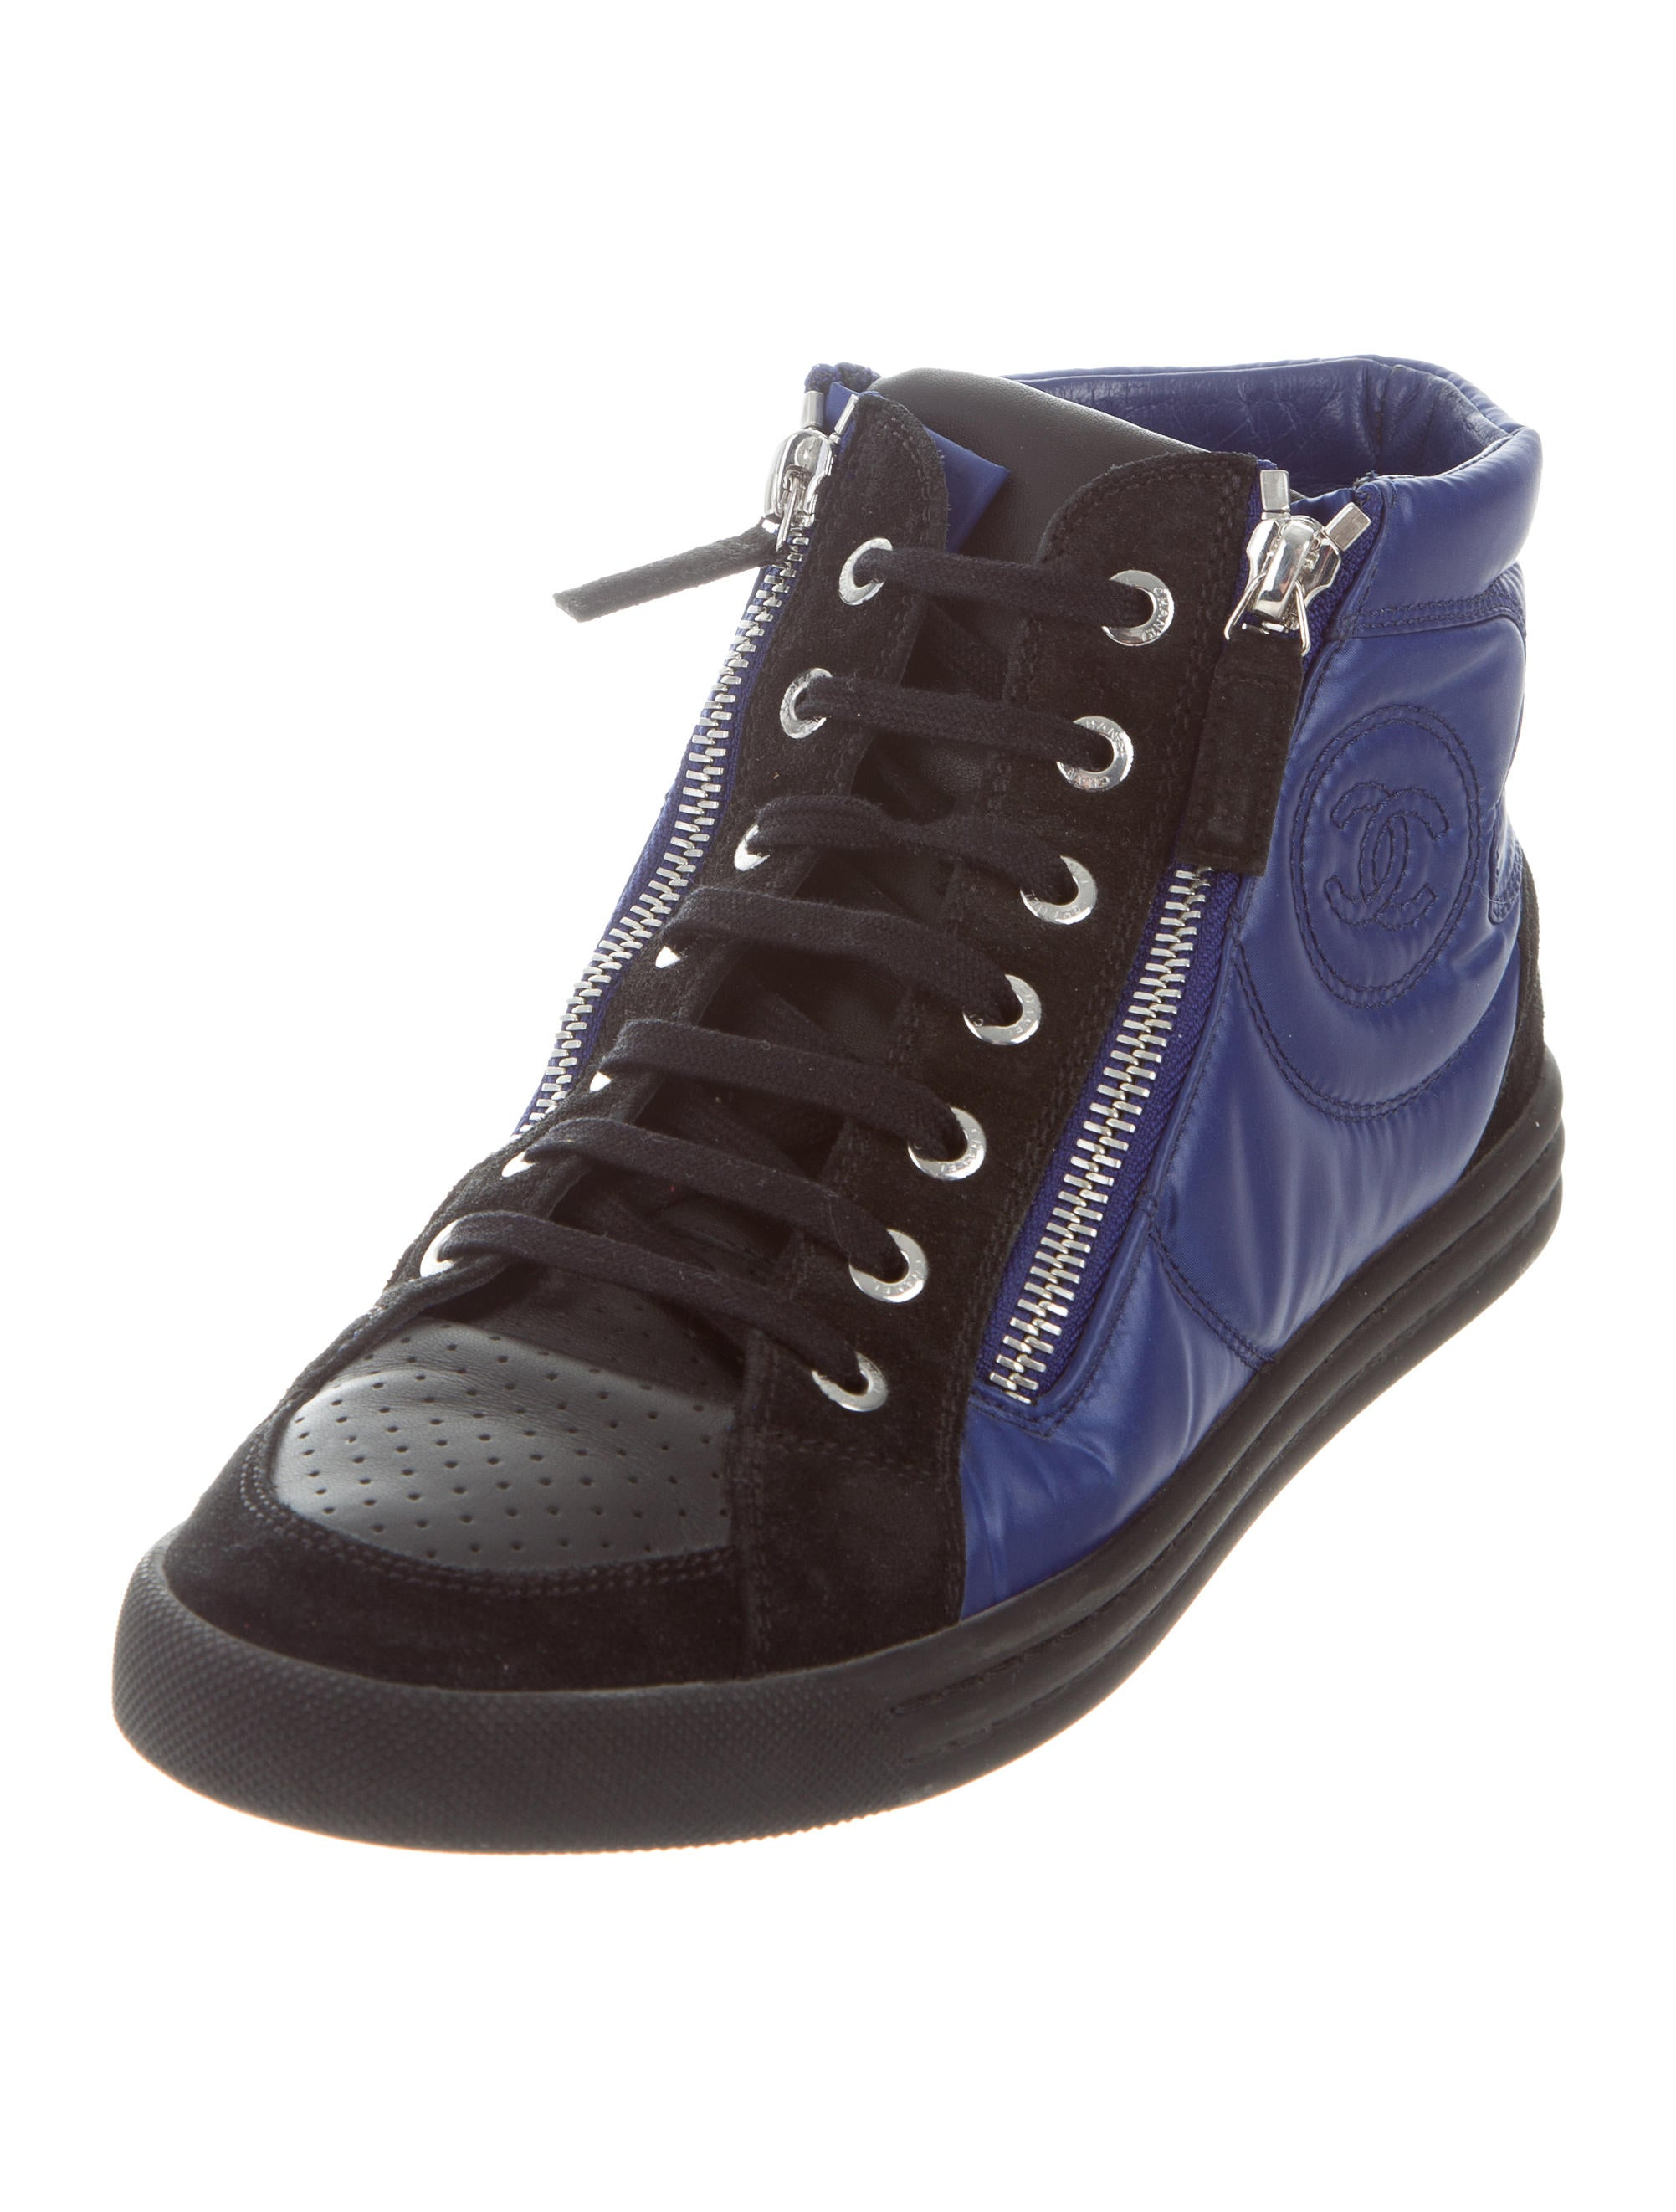 Chanel High Top Cc Sneakers Shoes Cha196039 The Realreal